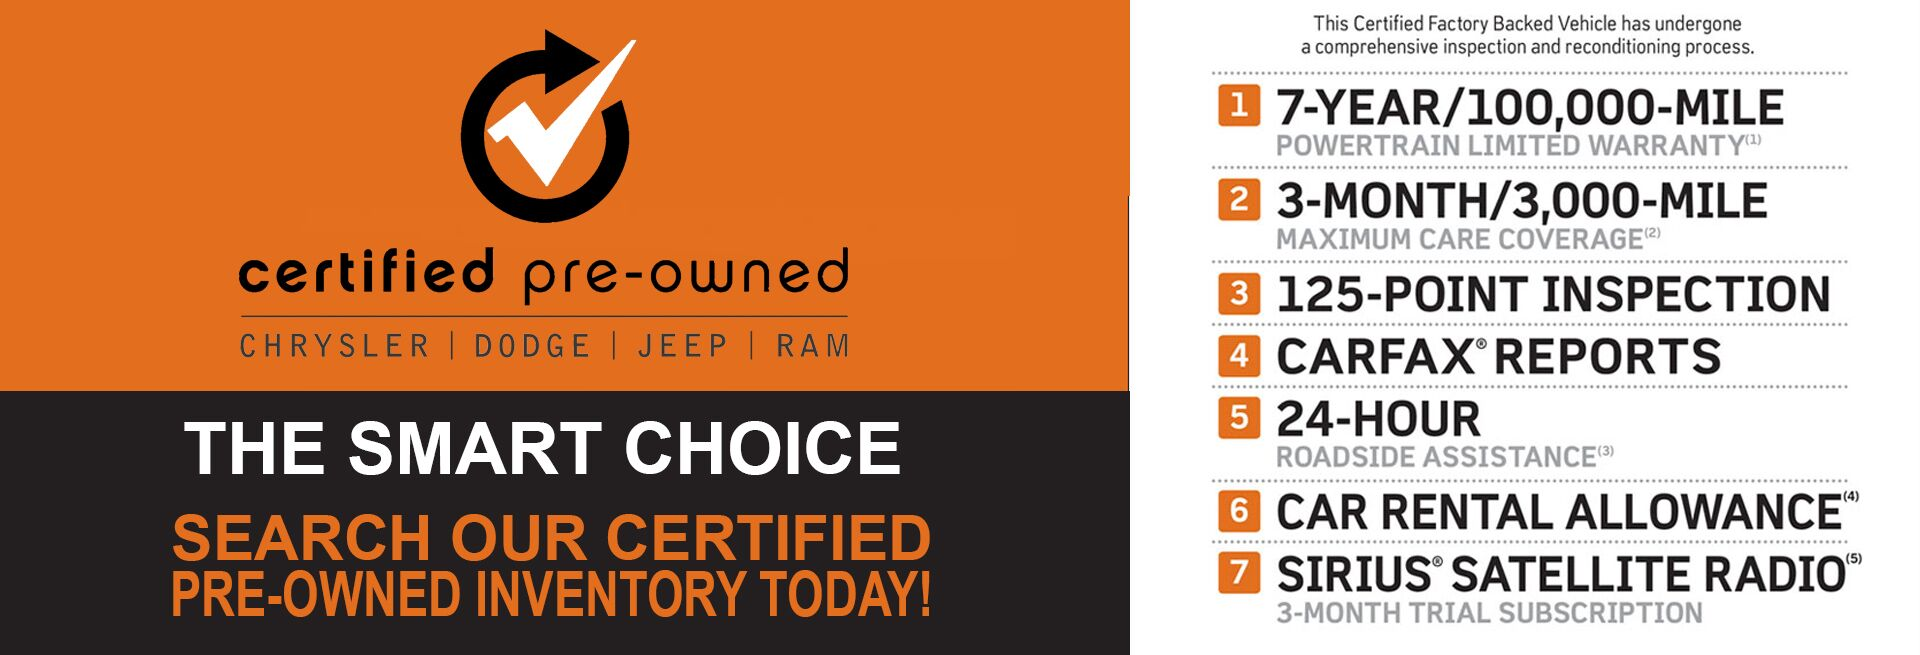 MY Jeep Chrysler Dodge Ram Certified Pre Owned